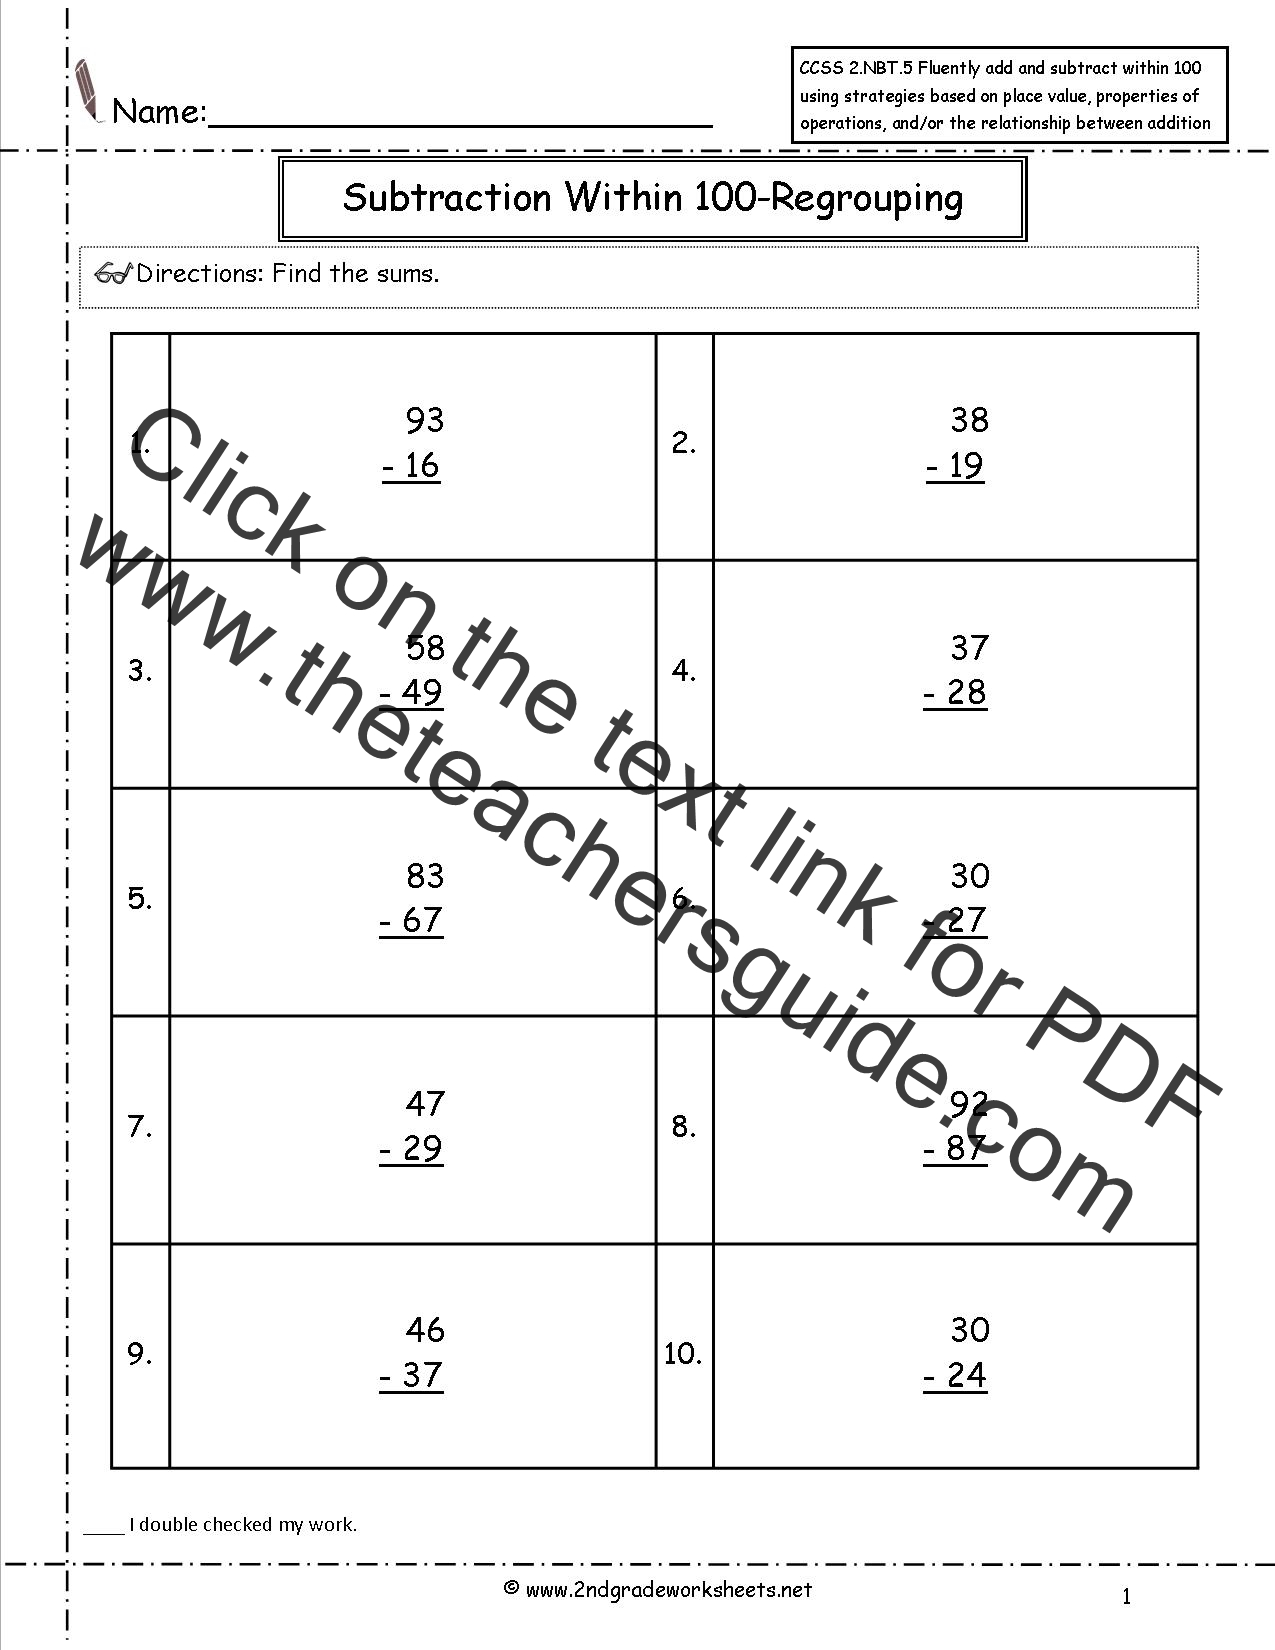 CCSS 2 NBT 5 Worksheets Two Digit Addition and Subtraction Within